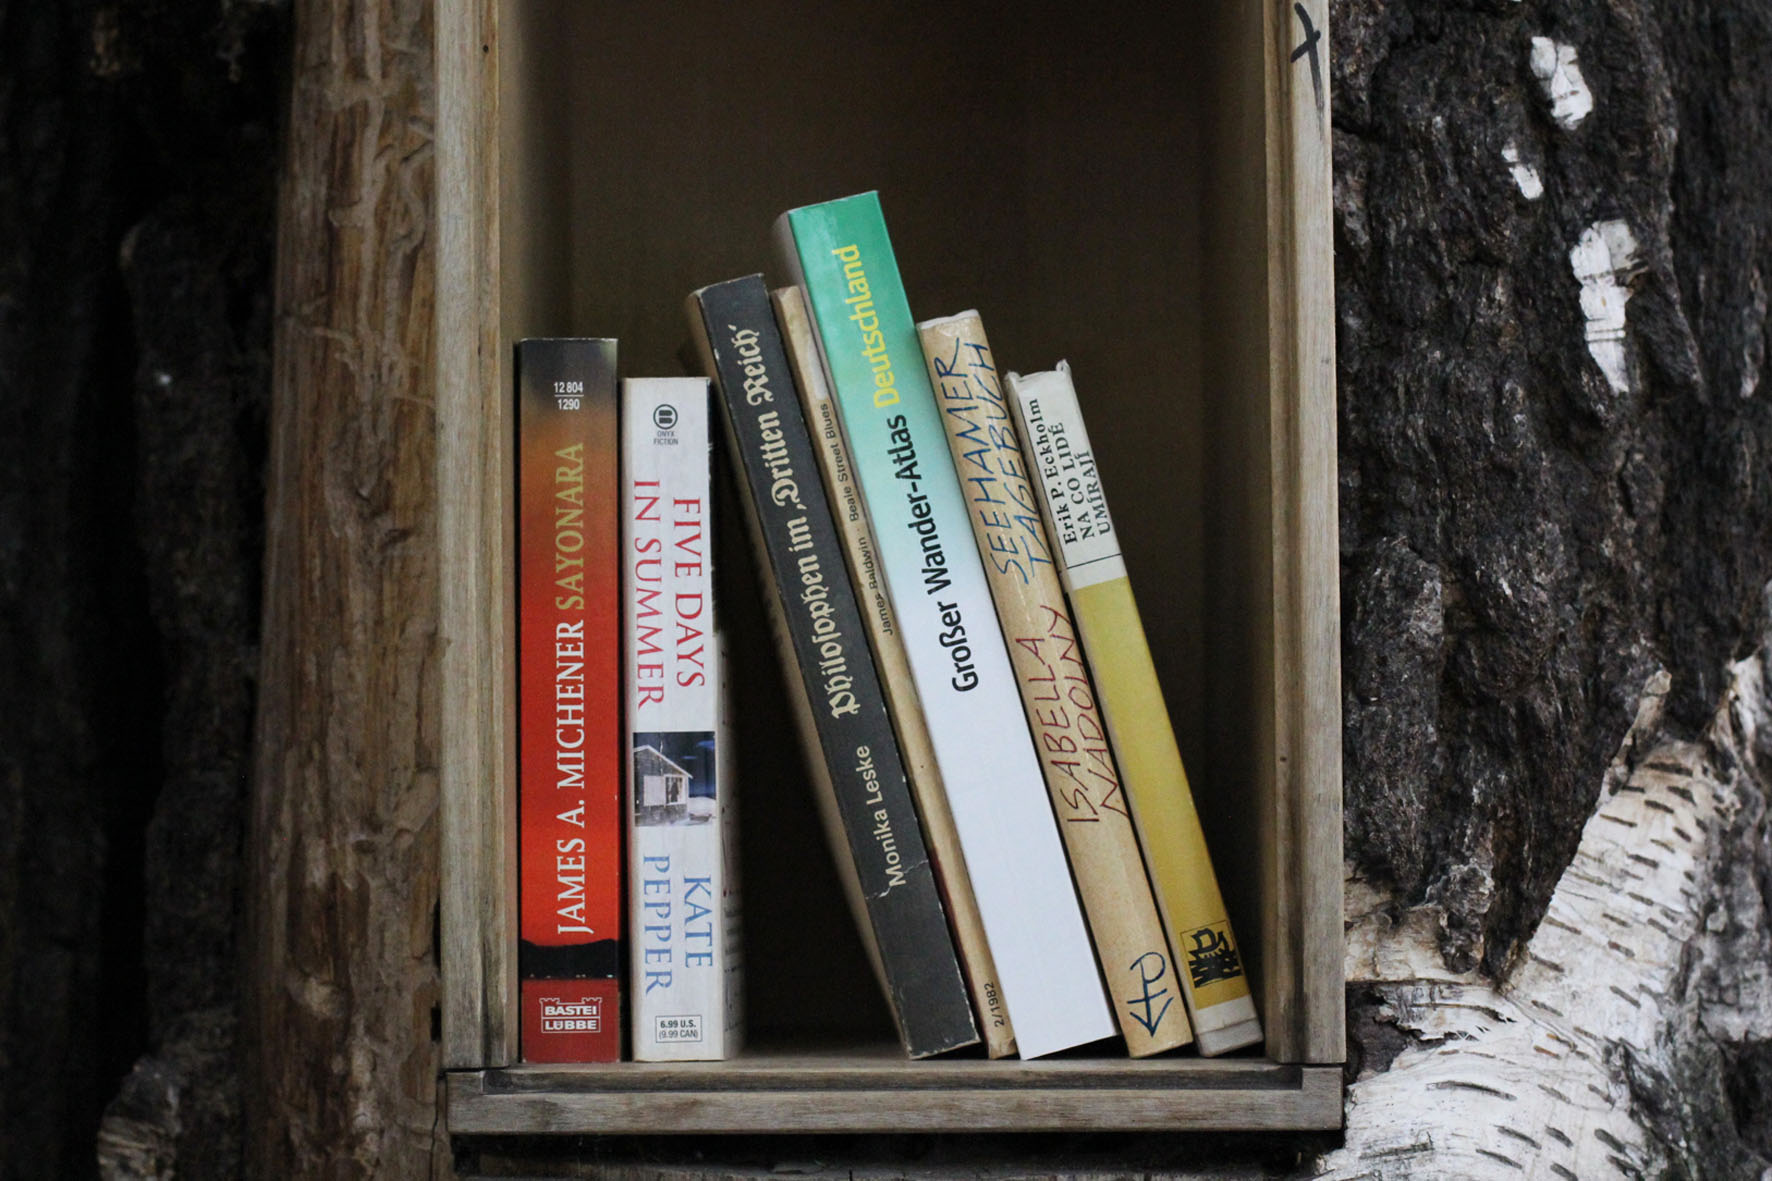 Books On A Shelf At Bcherwald Book Forest